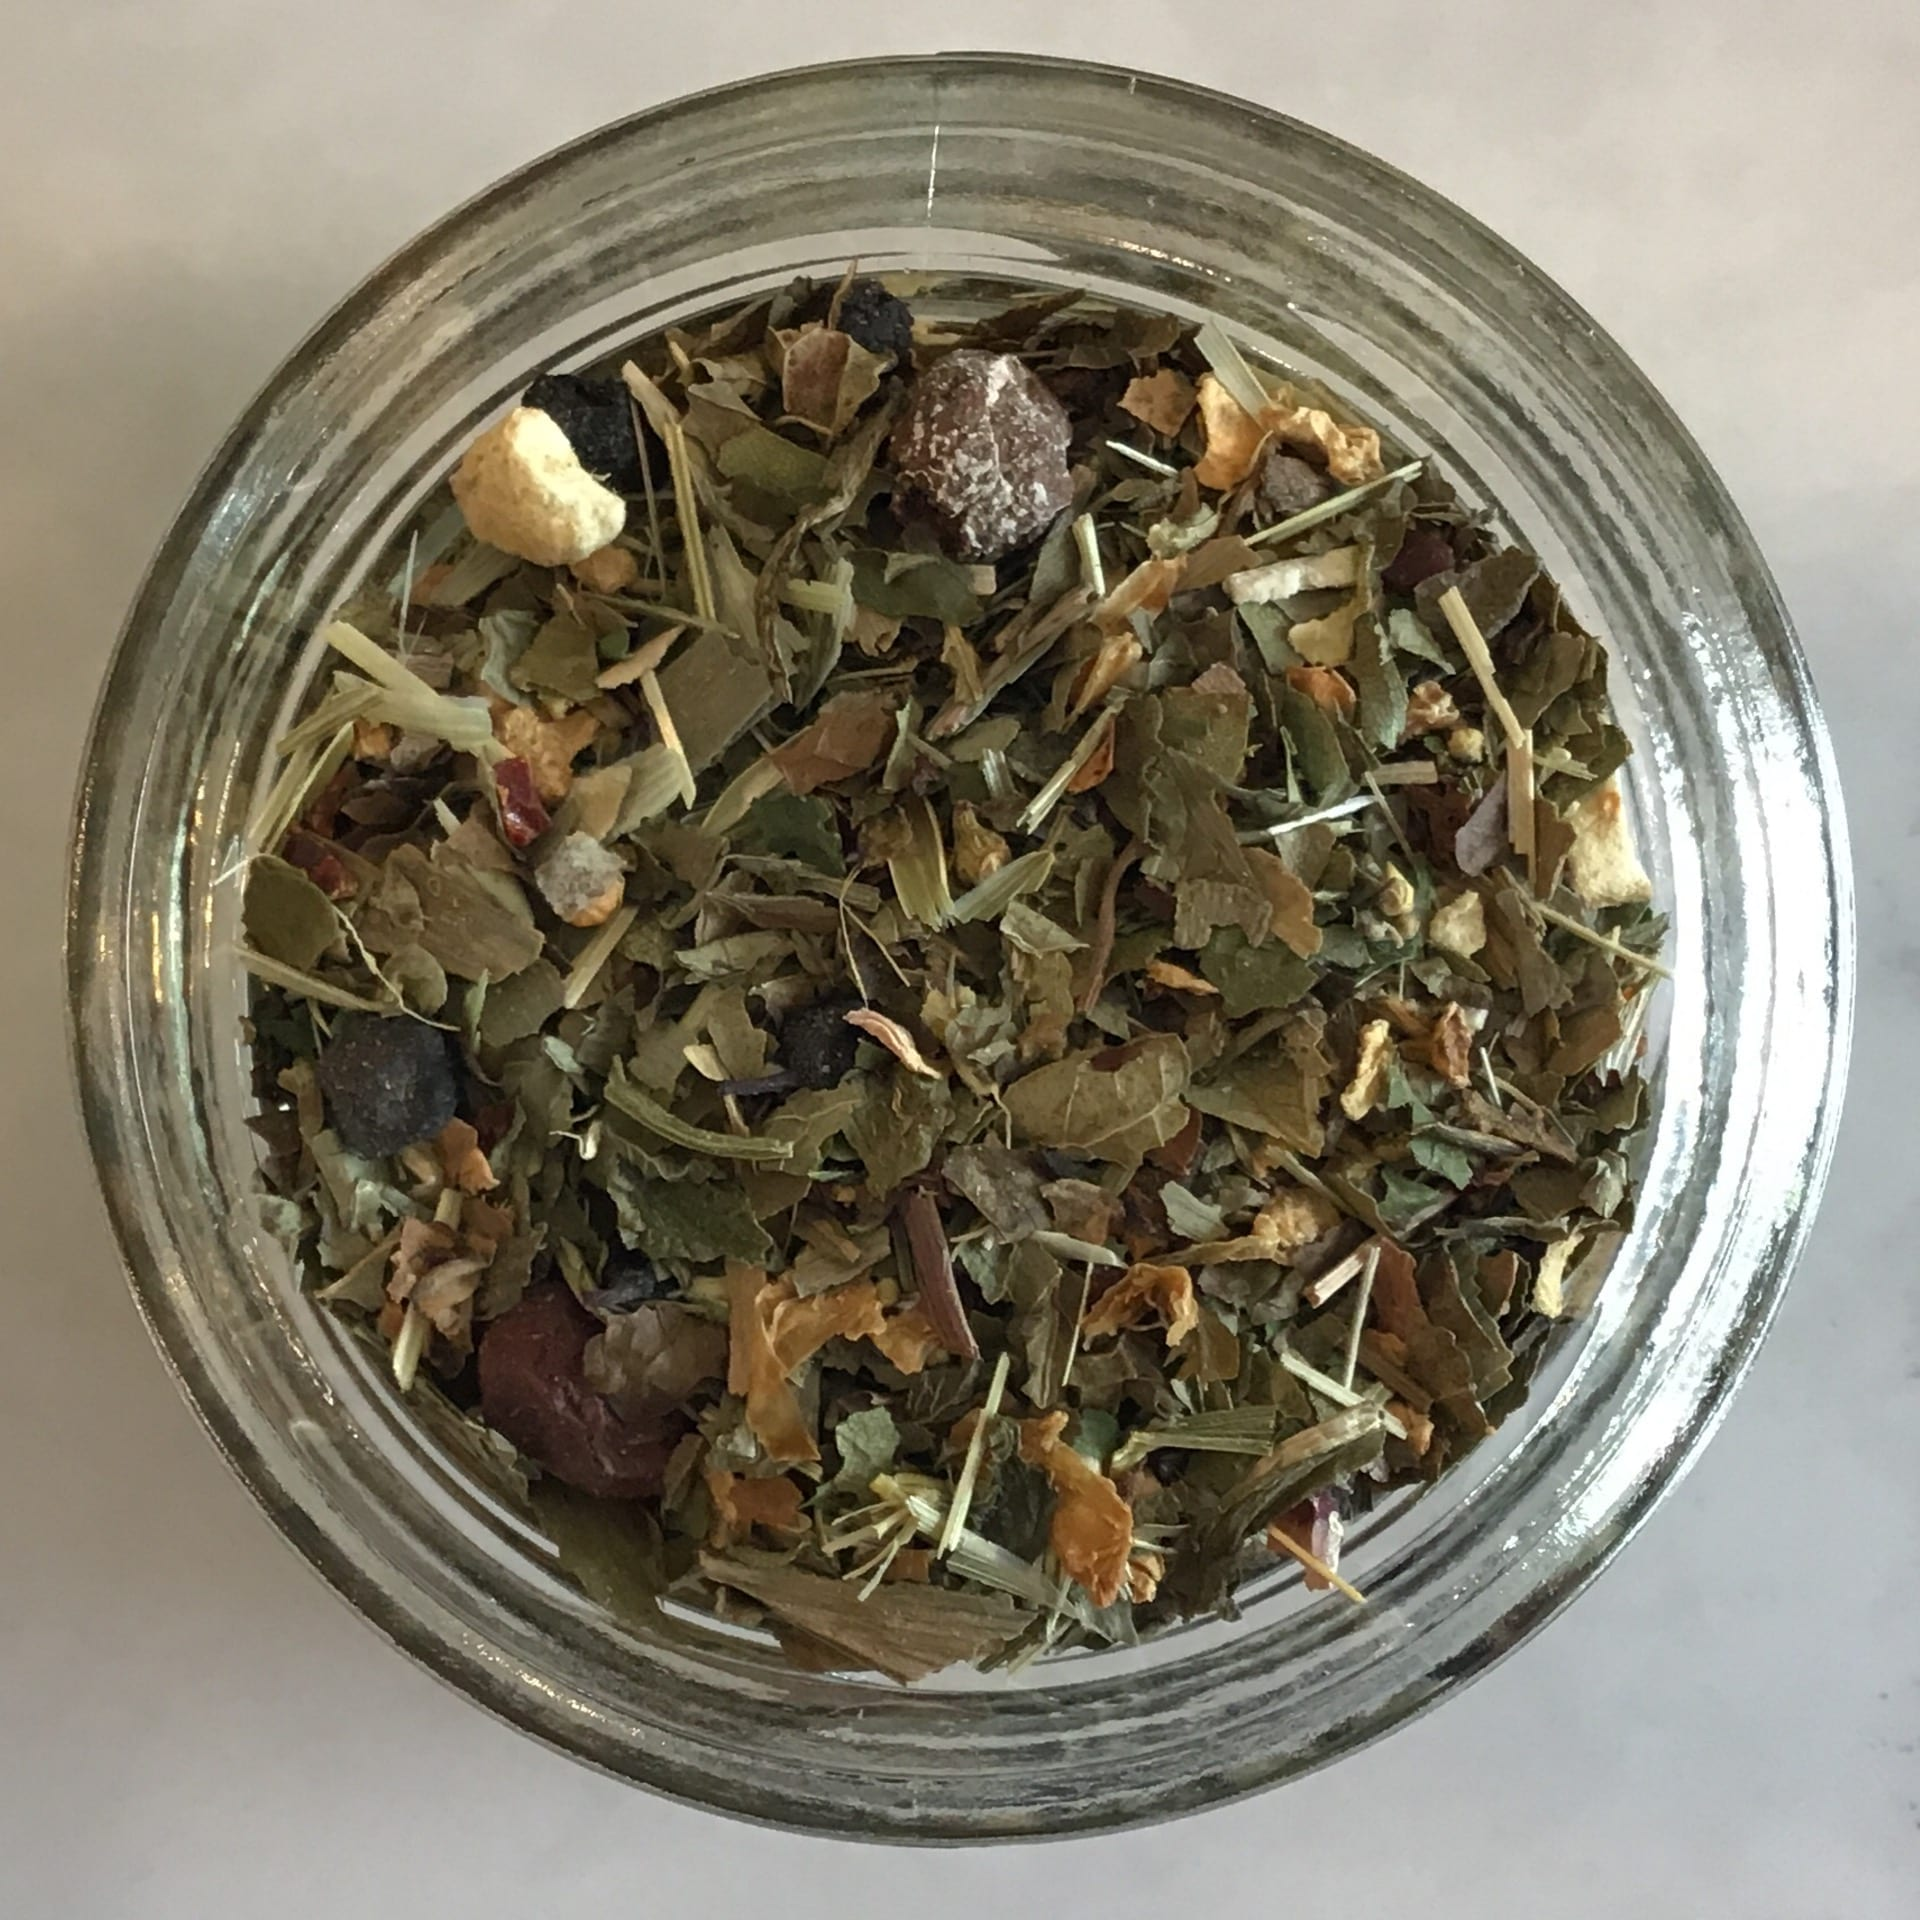 A healthy loose-leaf tea blend for the heart and the palate